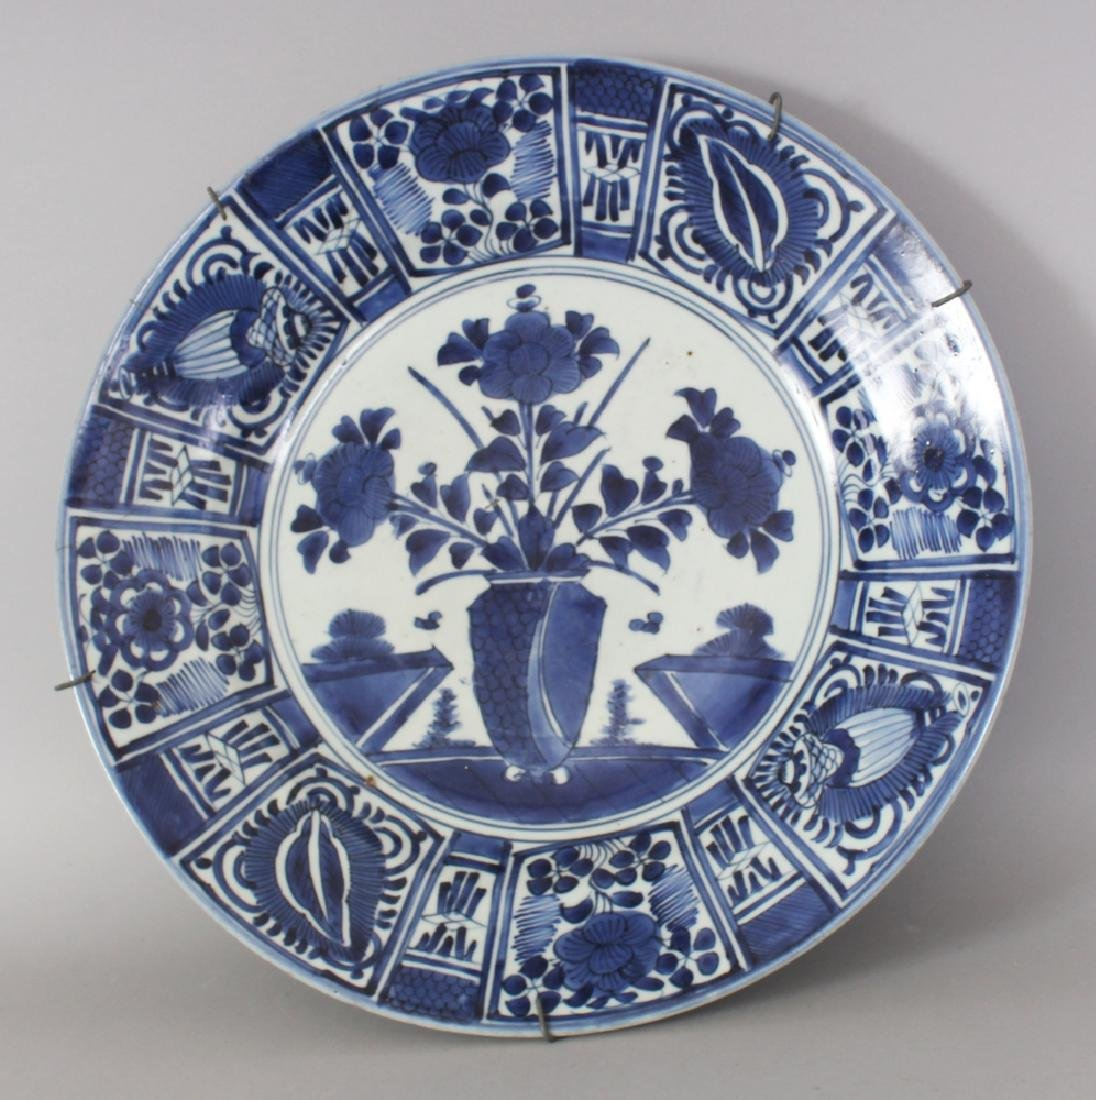 A LARGE 17TH/18TH CENTURY JAPANESE ARITA BLUE & WHITE